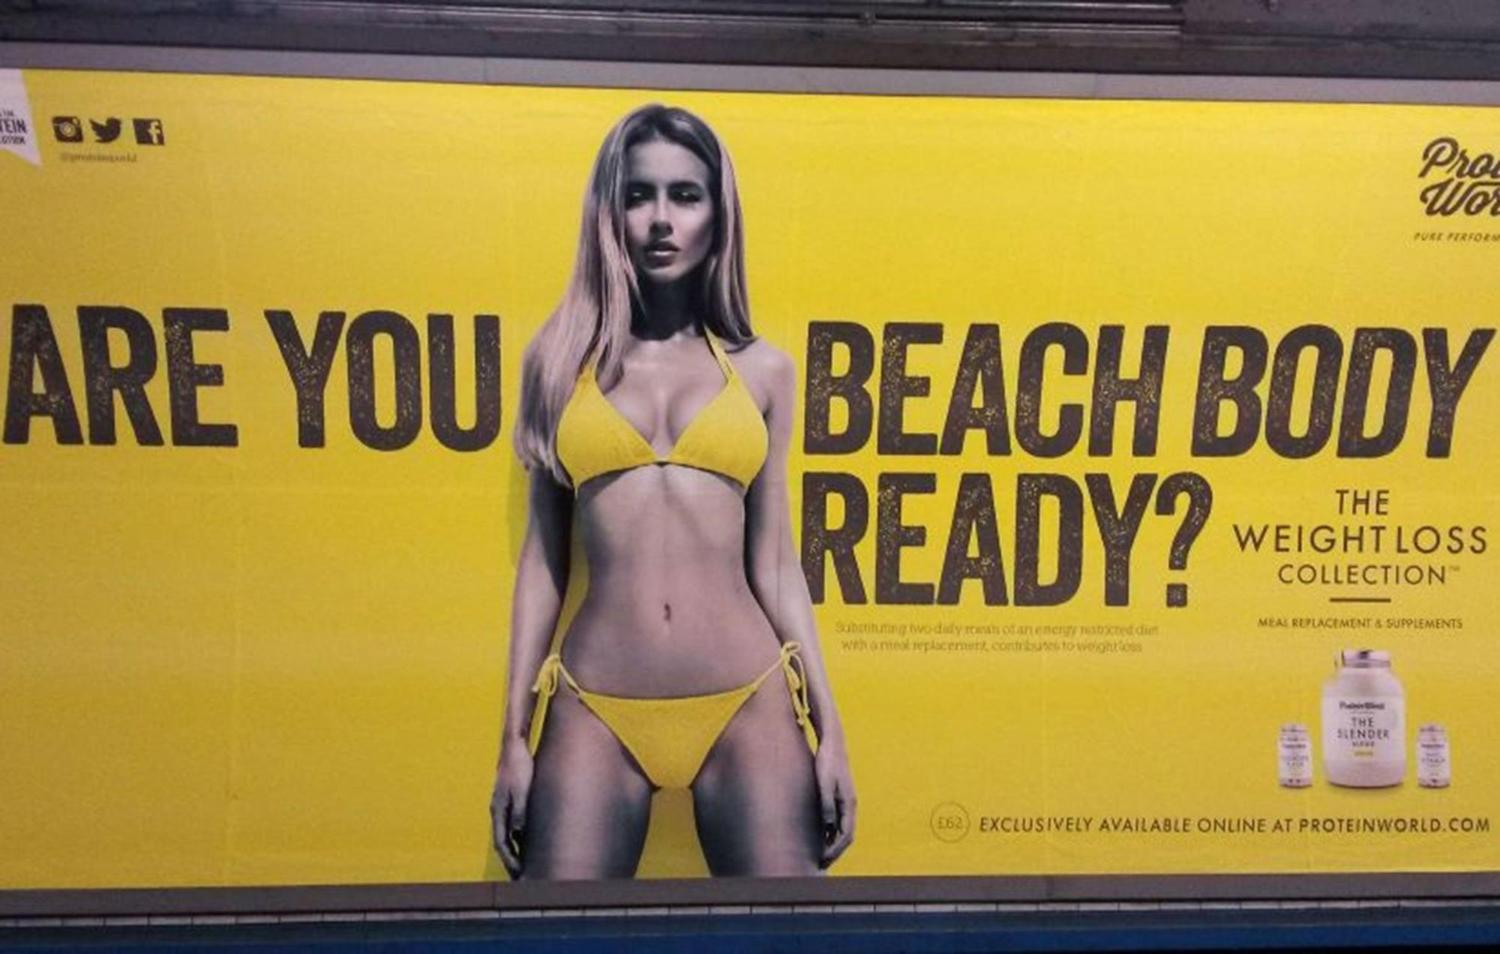 Stockholm bans sexist advertising from public spaces https://t.co/ZSQeoA5Pgy https://t.co/eBeQZ8BS8J